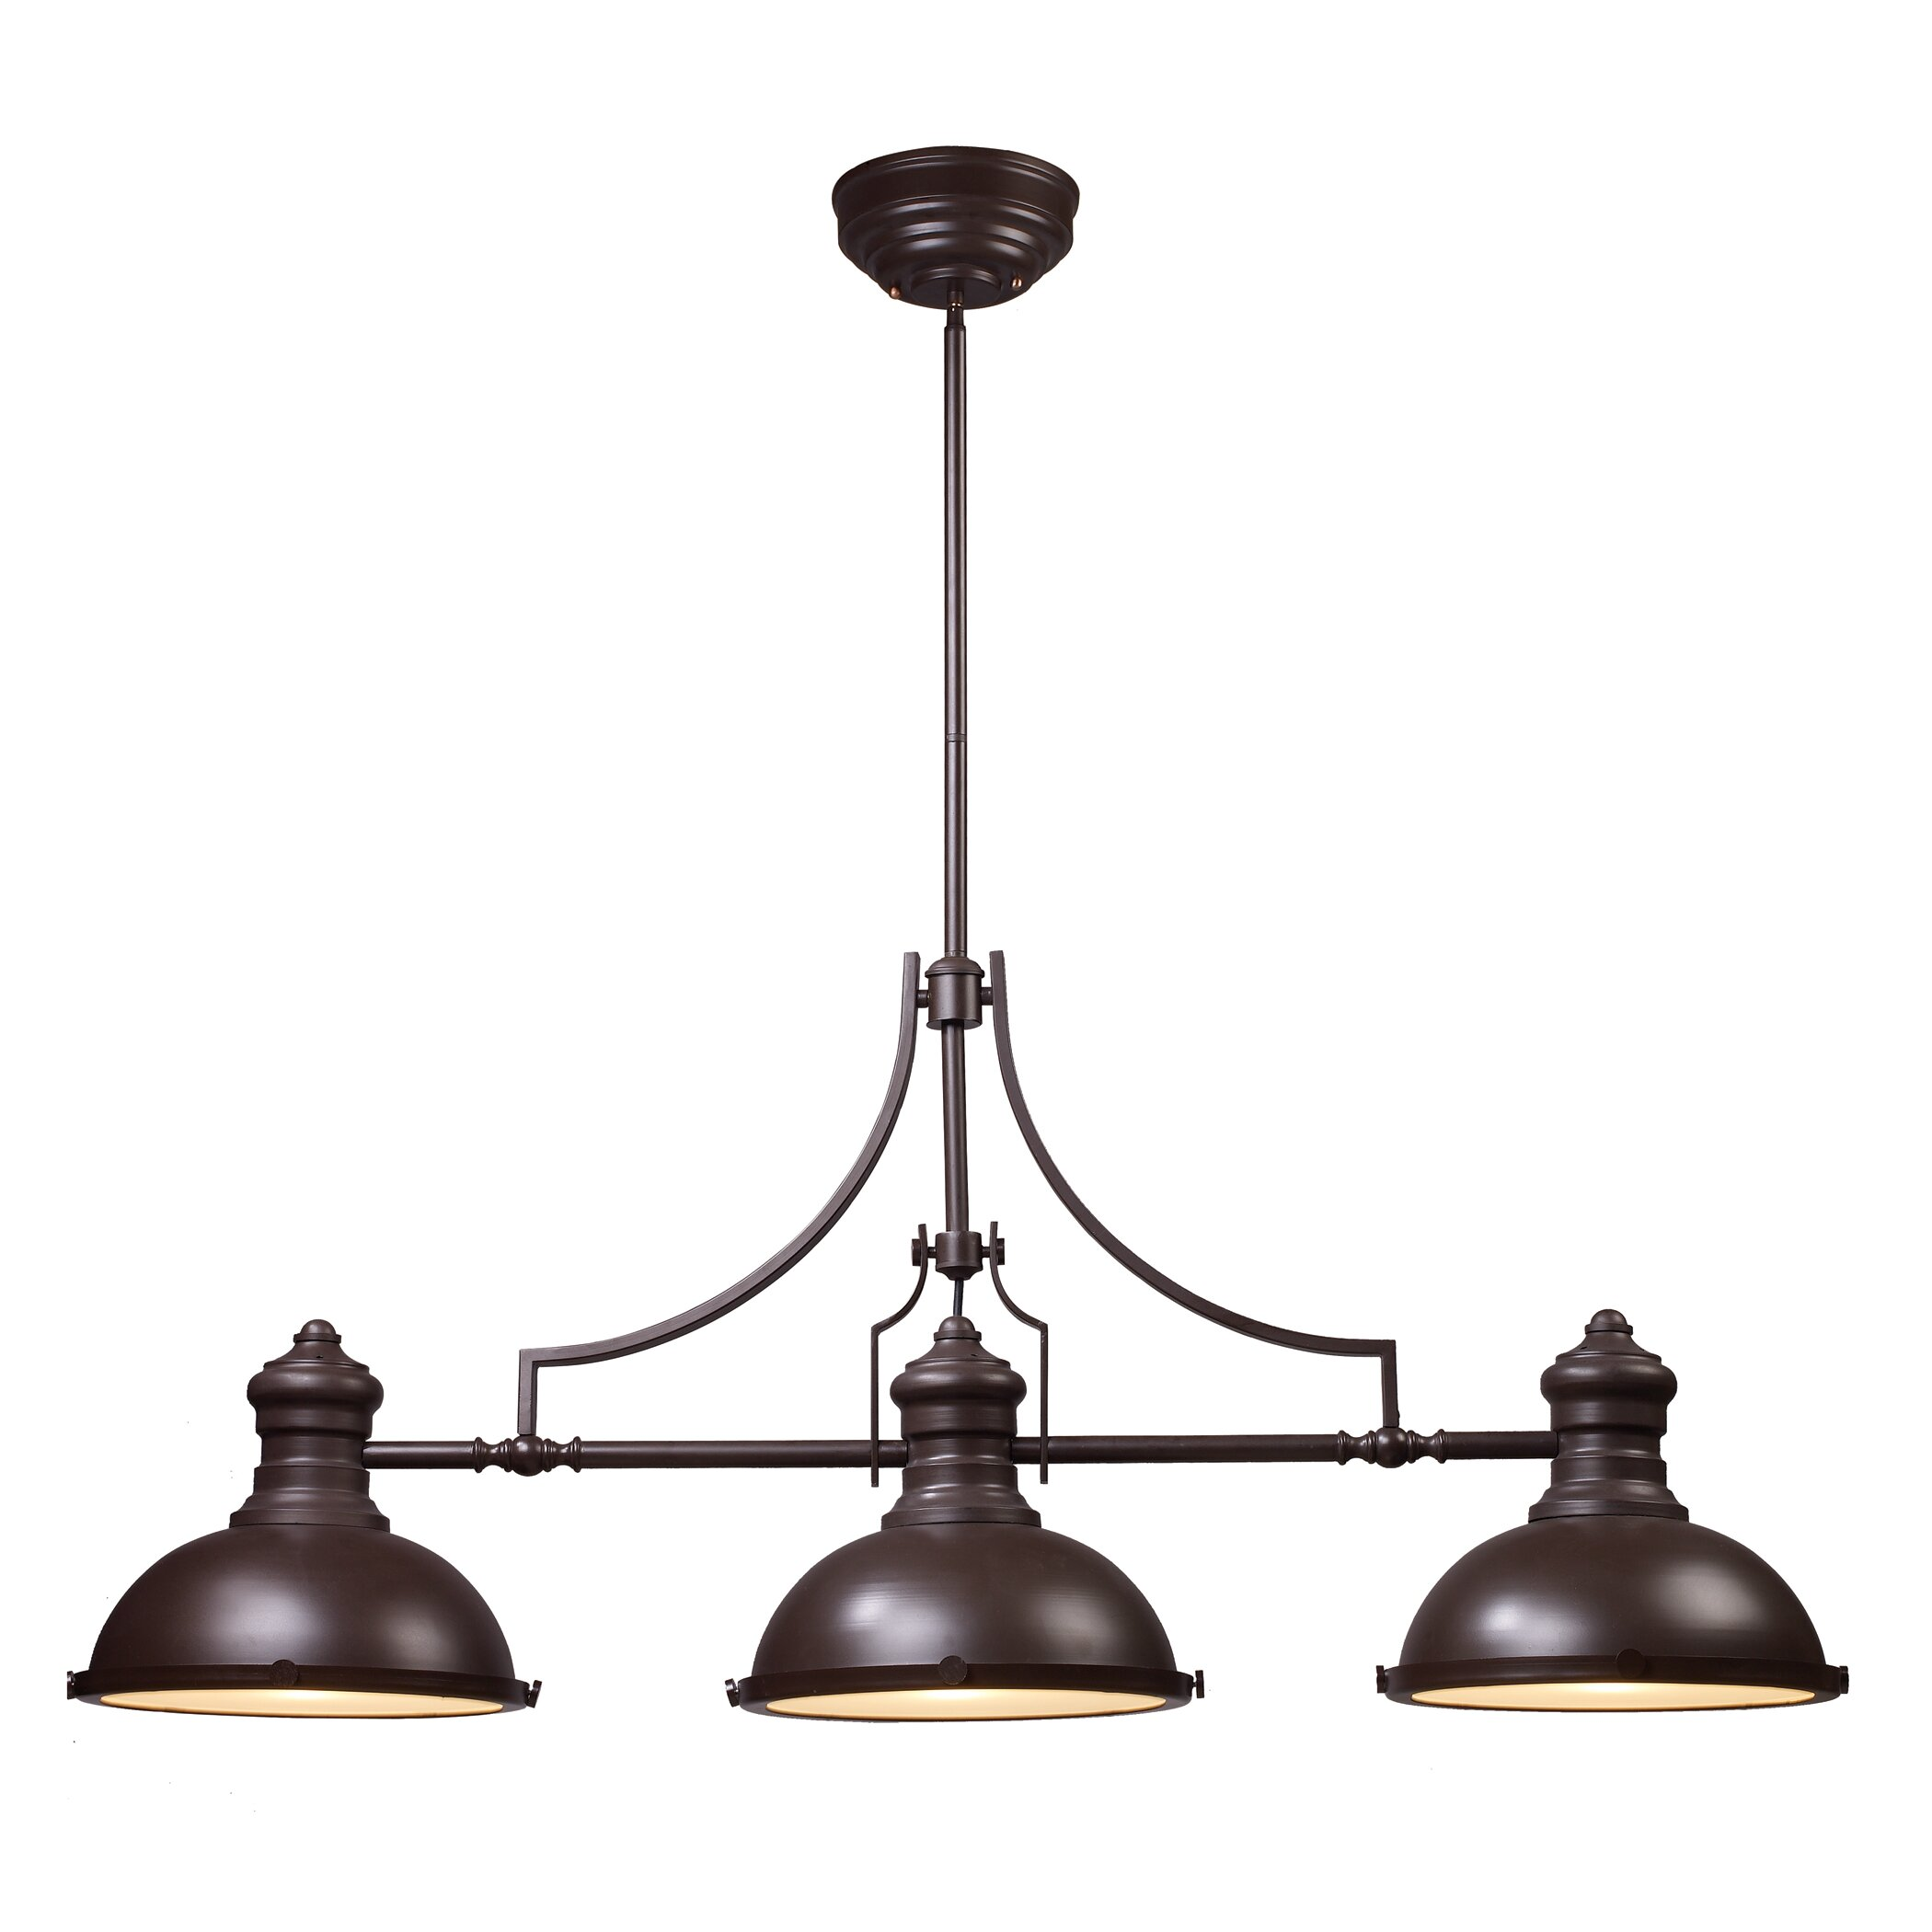 Landmark lighting chadwick 3 light kitchen island pendant for Island kitchen lighting fixtures